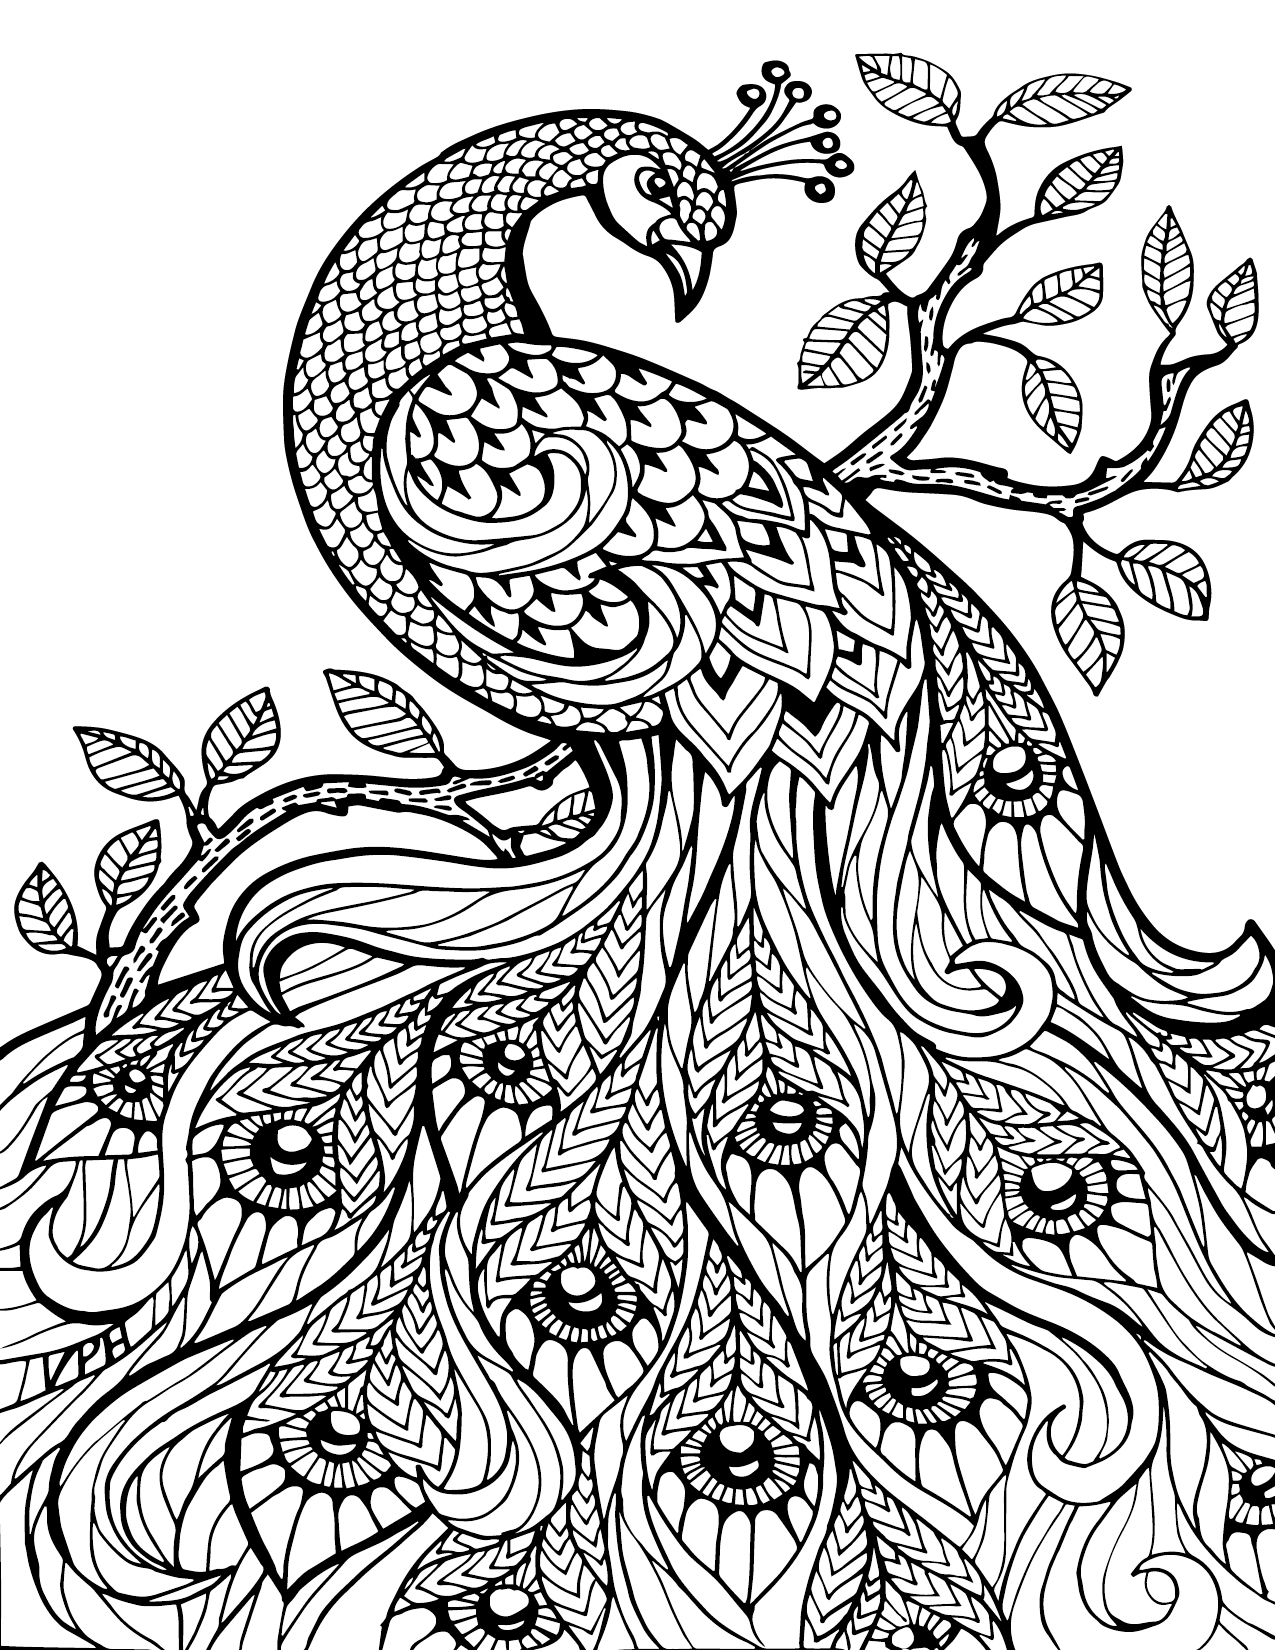 coloring pages for adults to print - animal coloring pages for adults